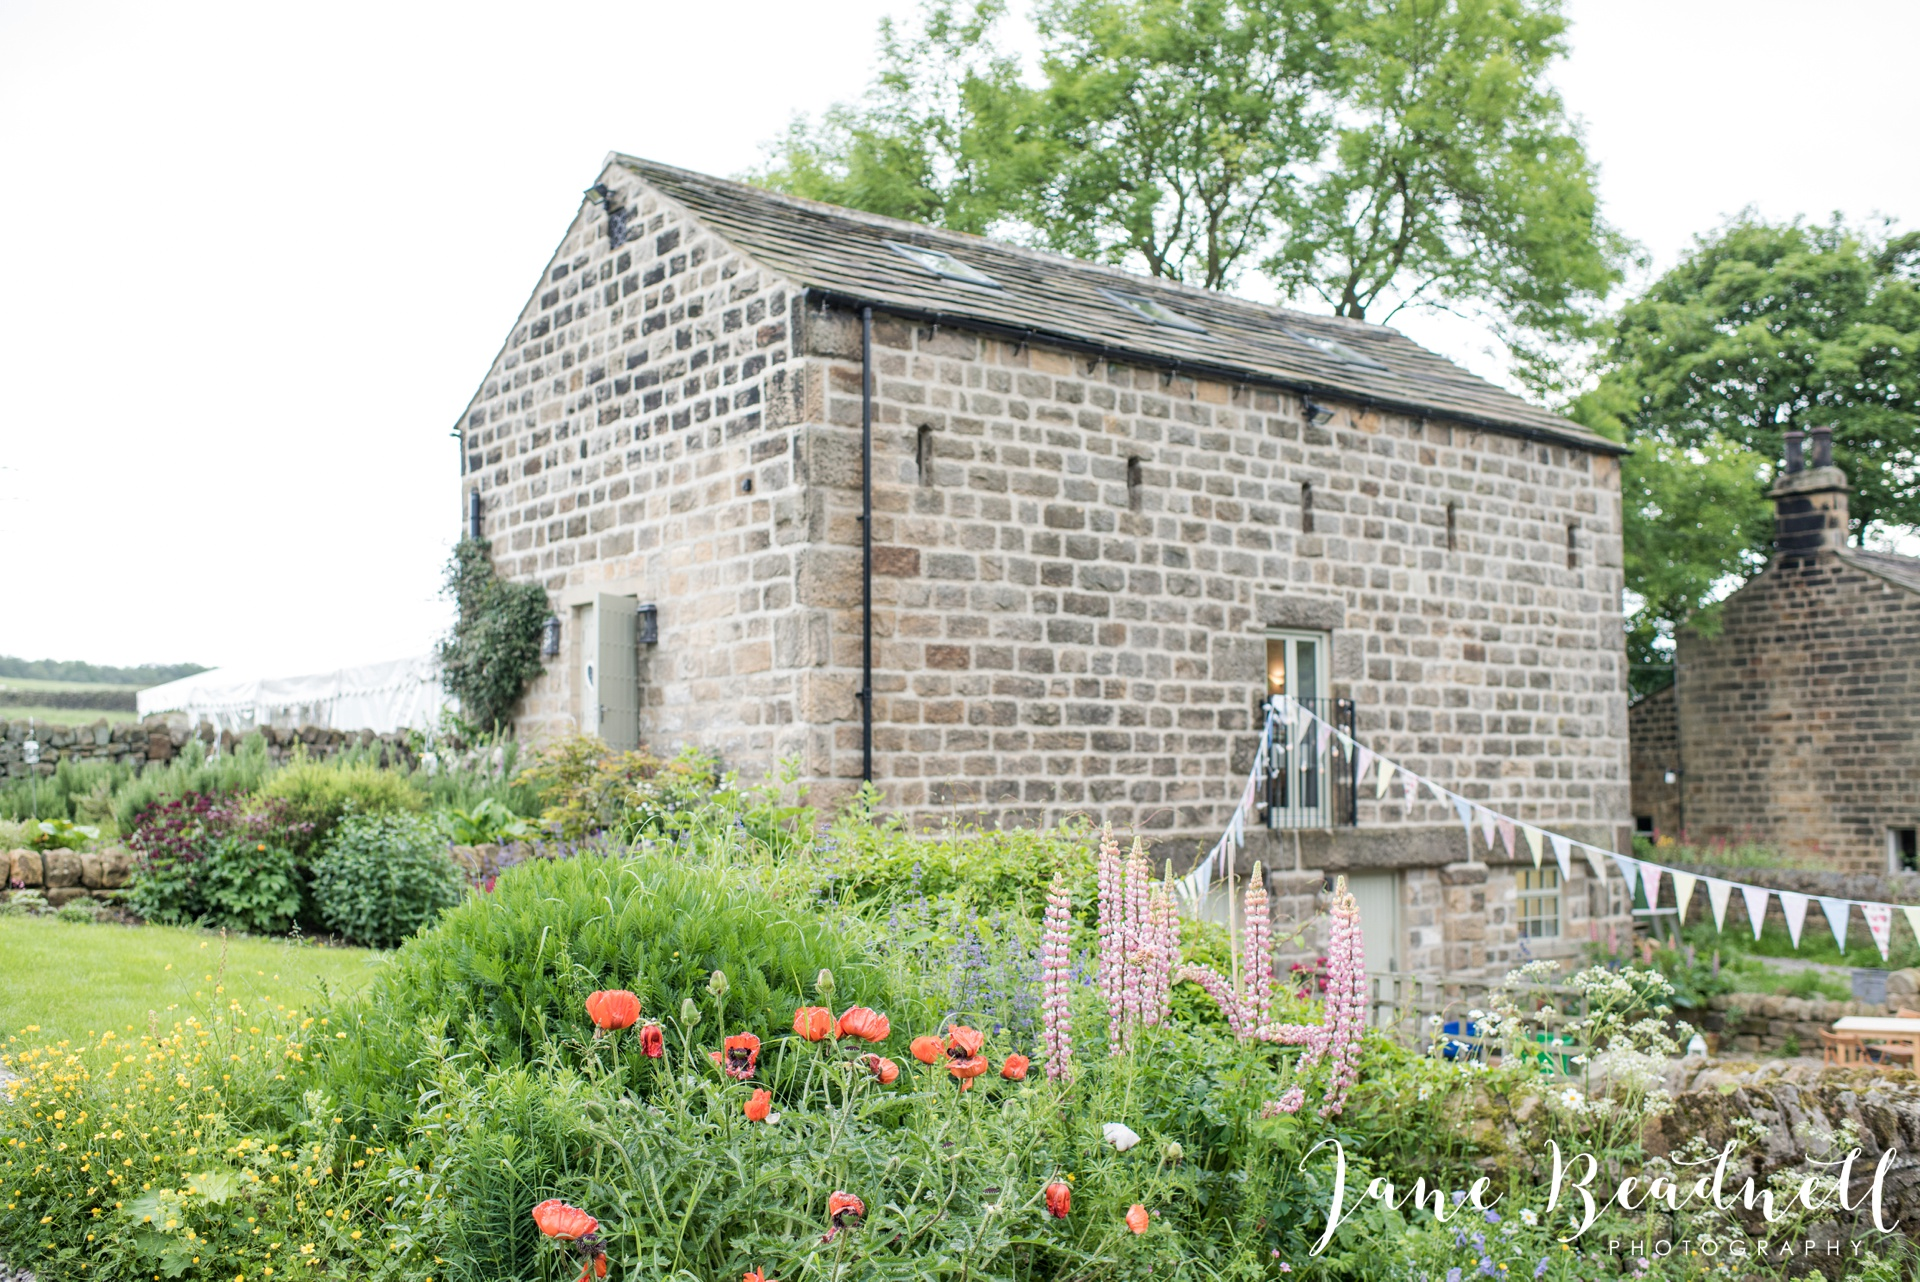 Yorkshire Wedding Photography the cheerful Chilli Barn Wedding by Jane Beadnell Photography_0119